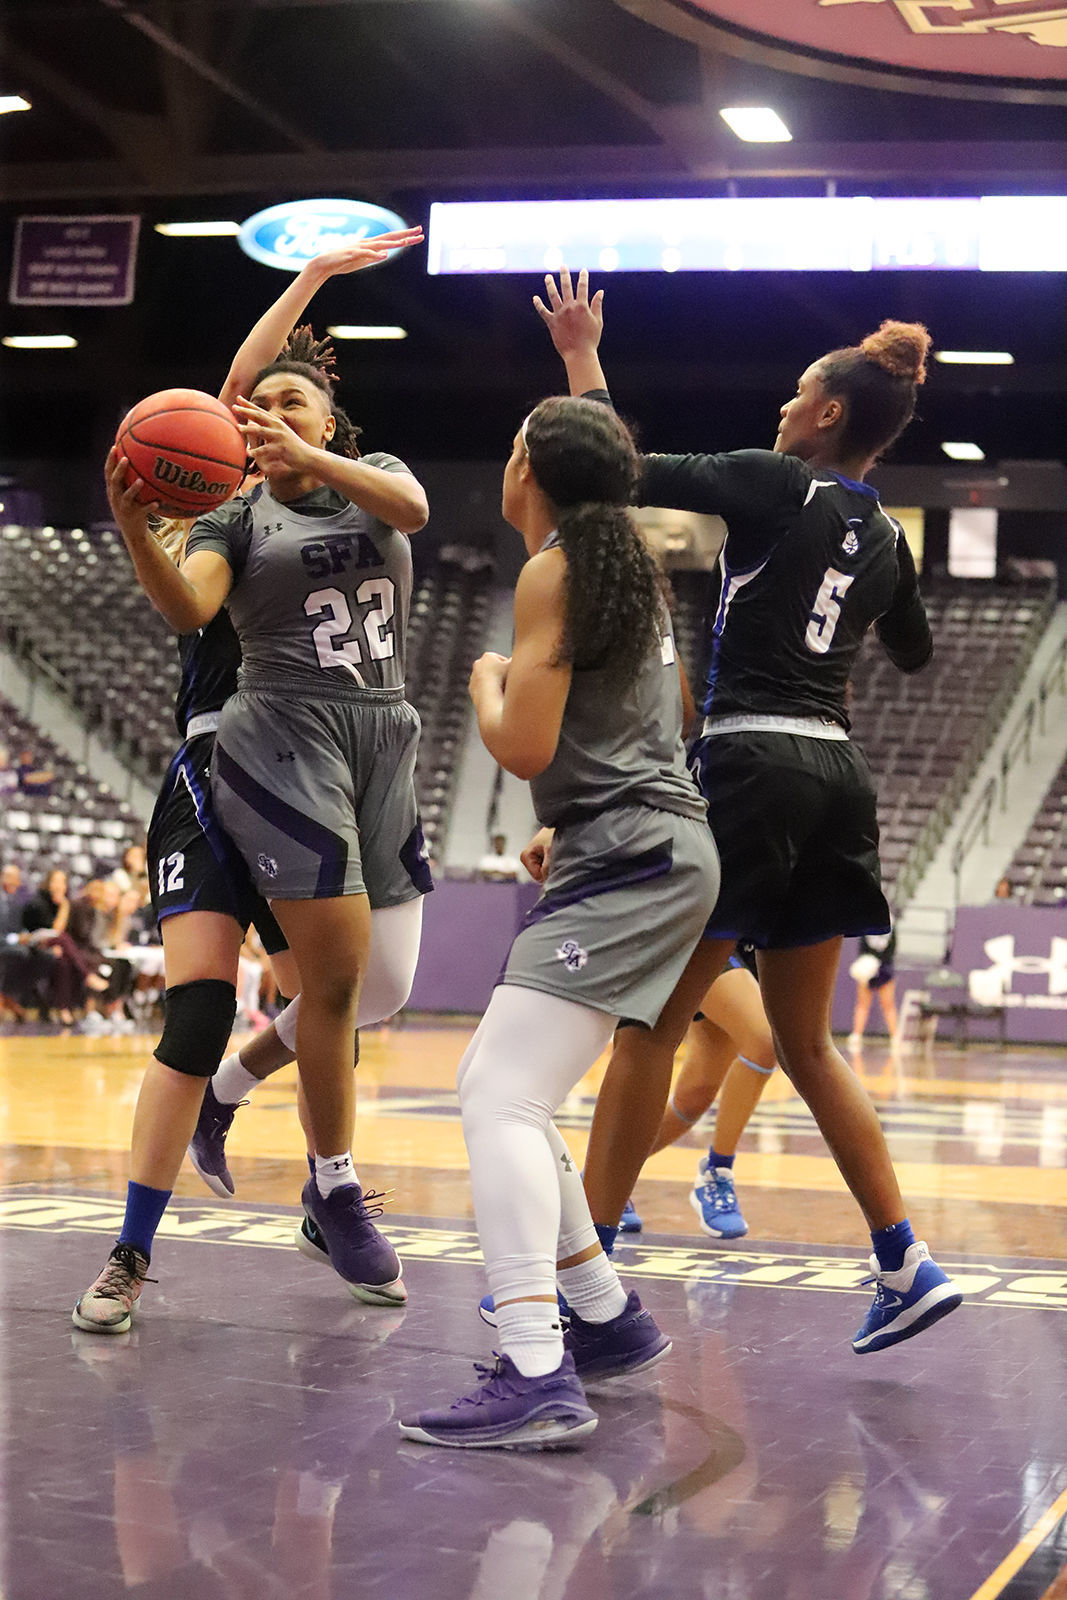 Ladyjacks v. OLLU, Dec. 29, 2019